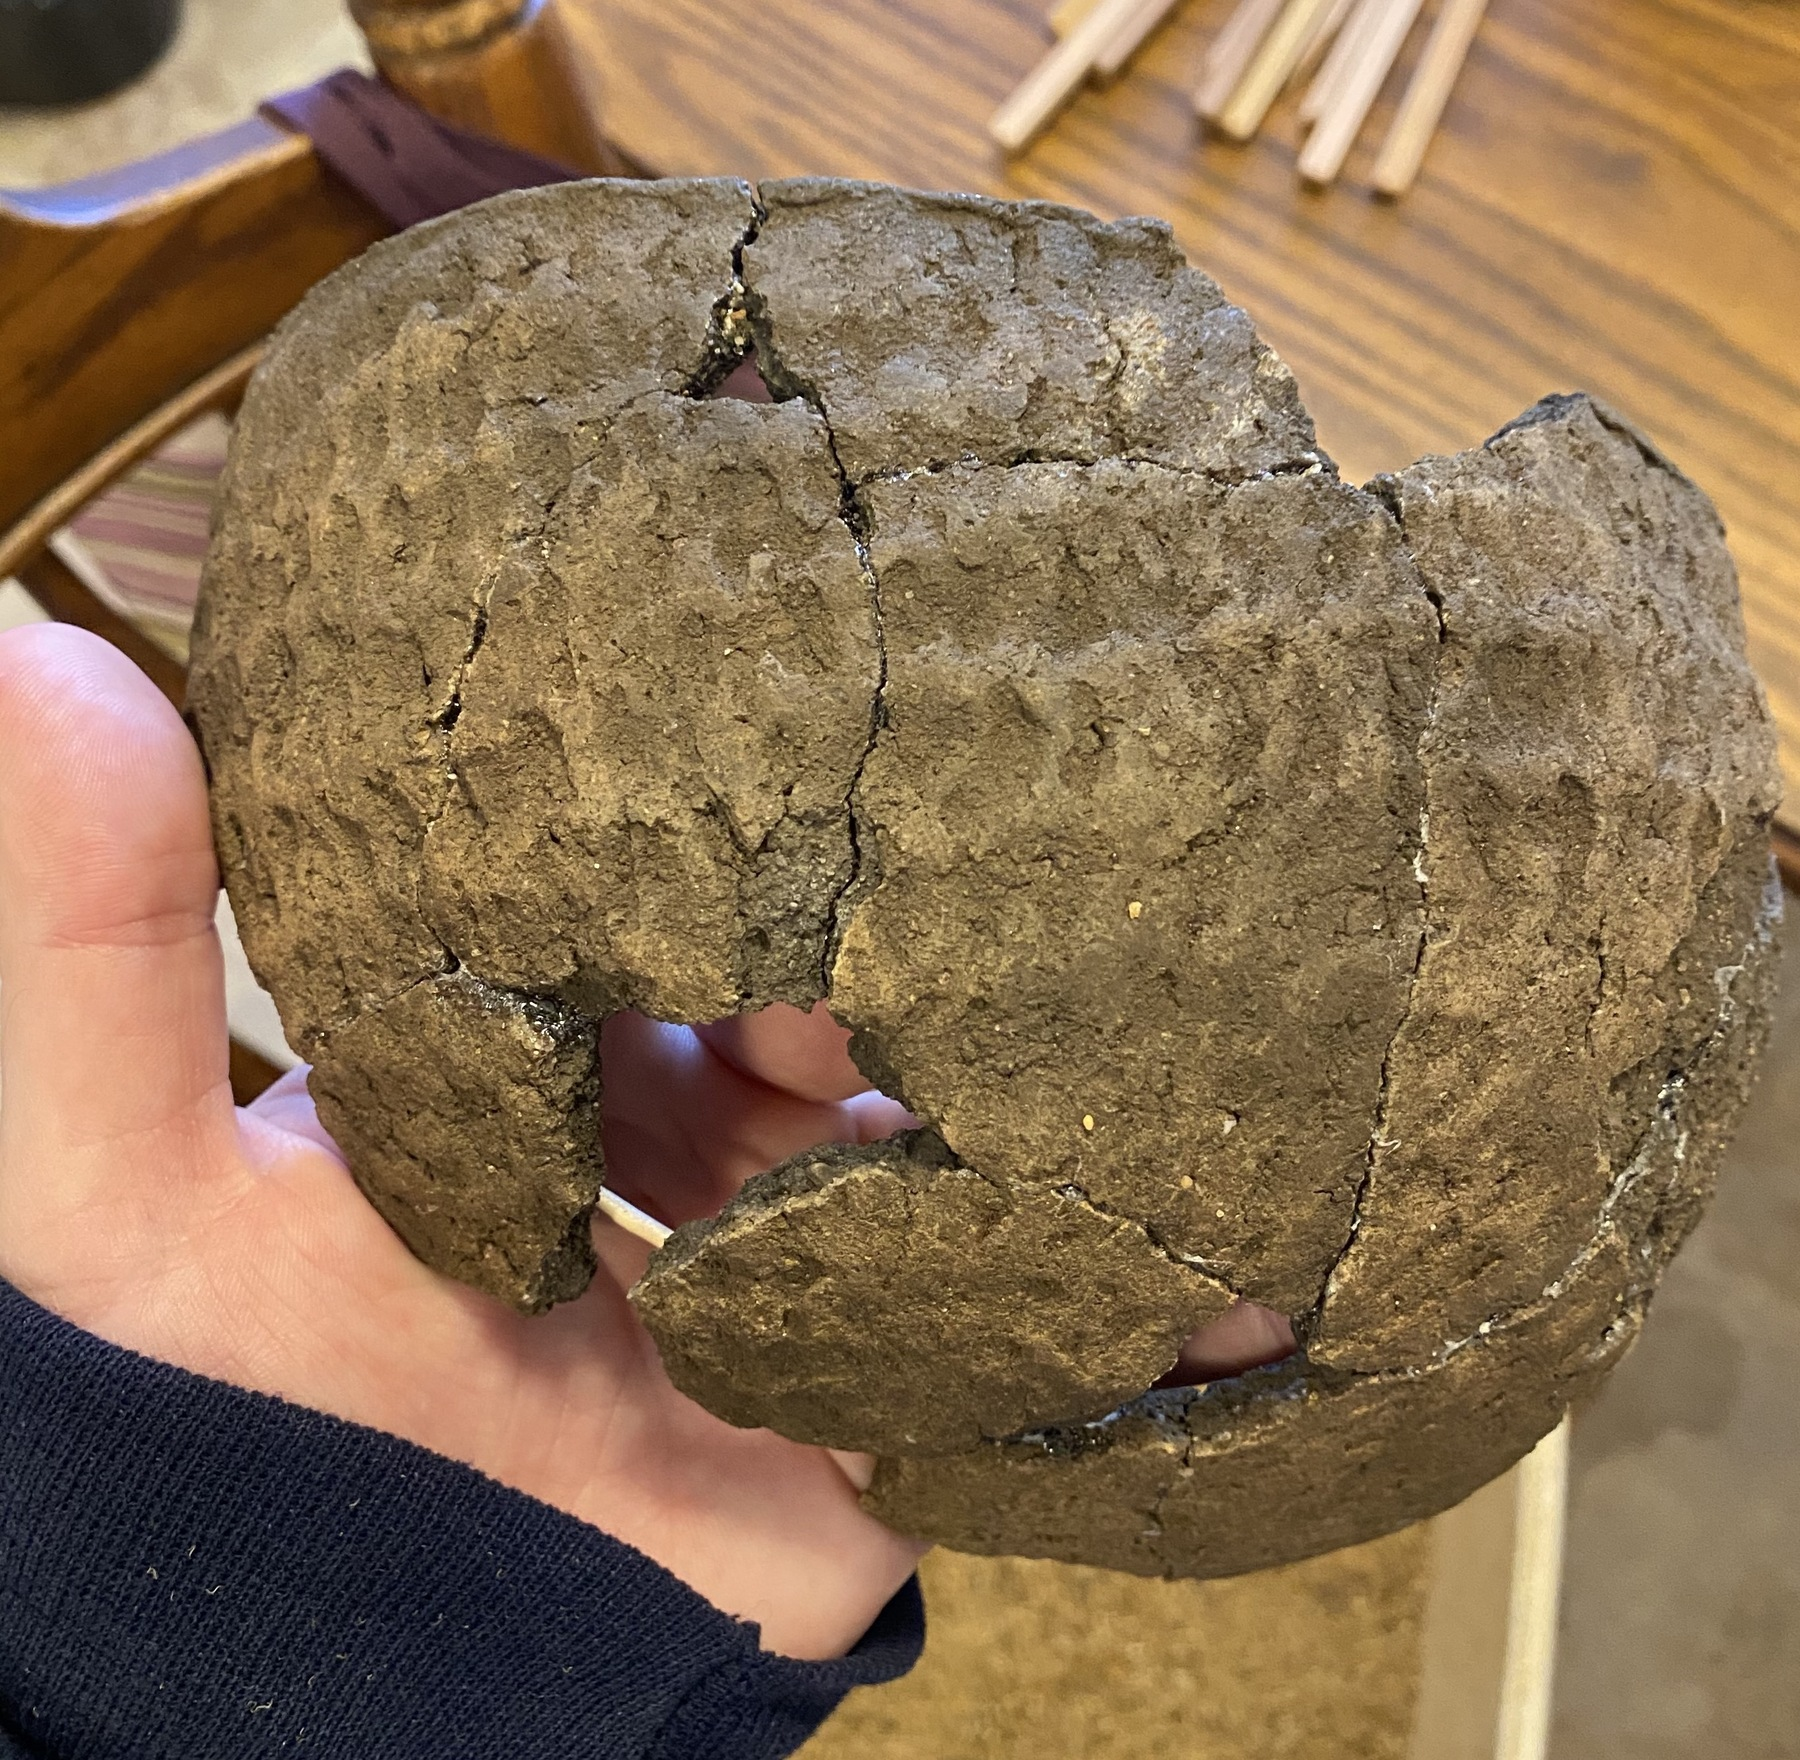 A recently reconstructed La Crosse fabric-marked vessel from the Herb Mangold donation.